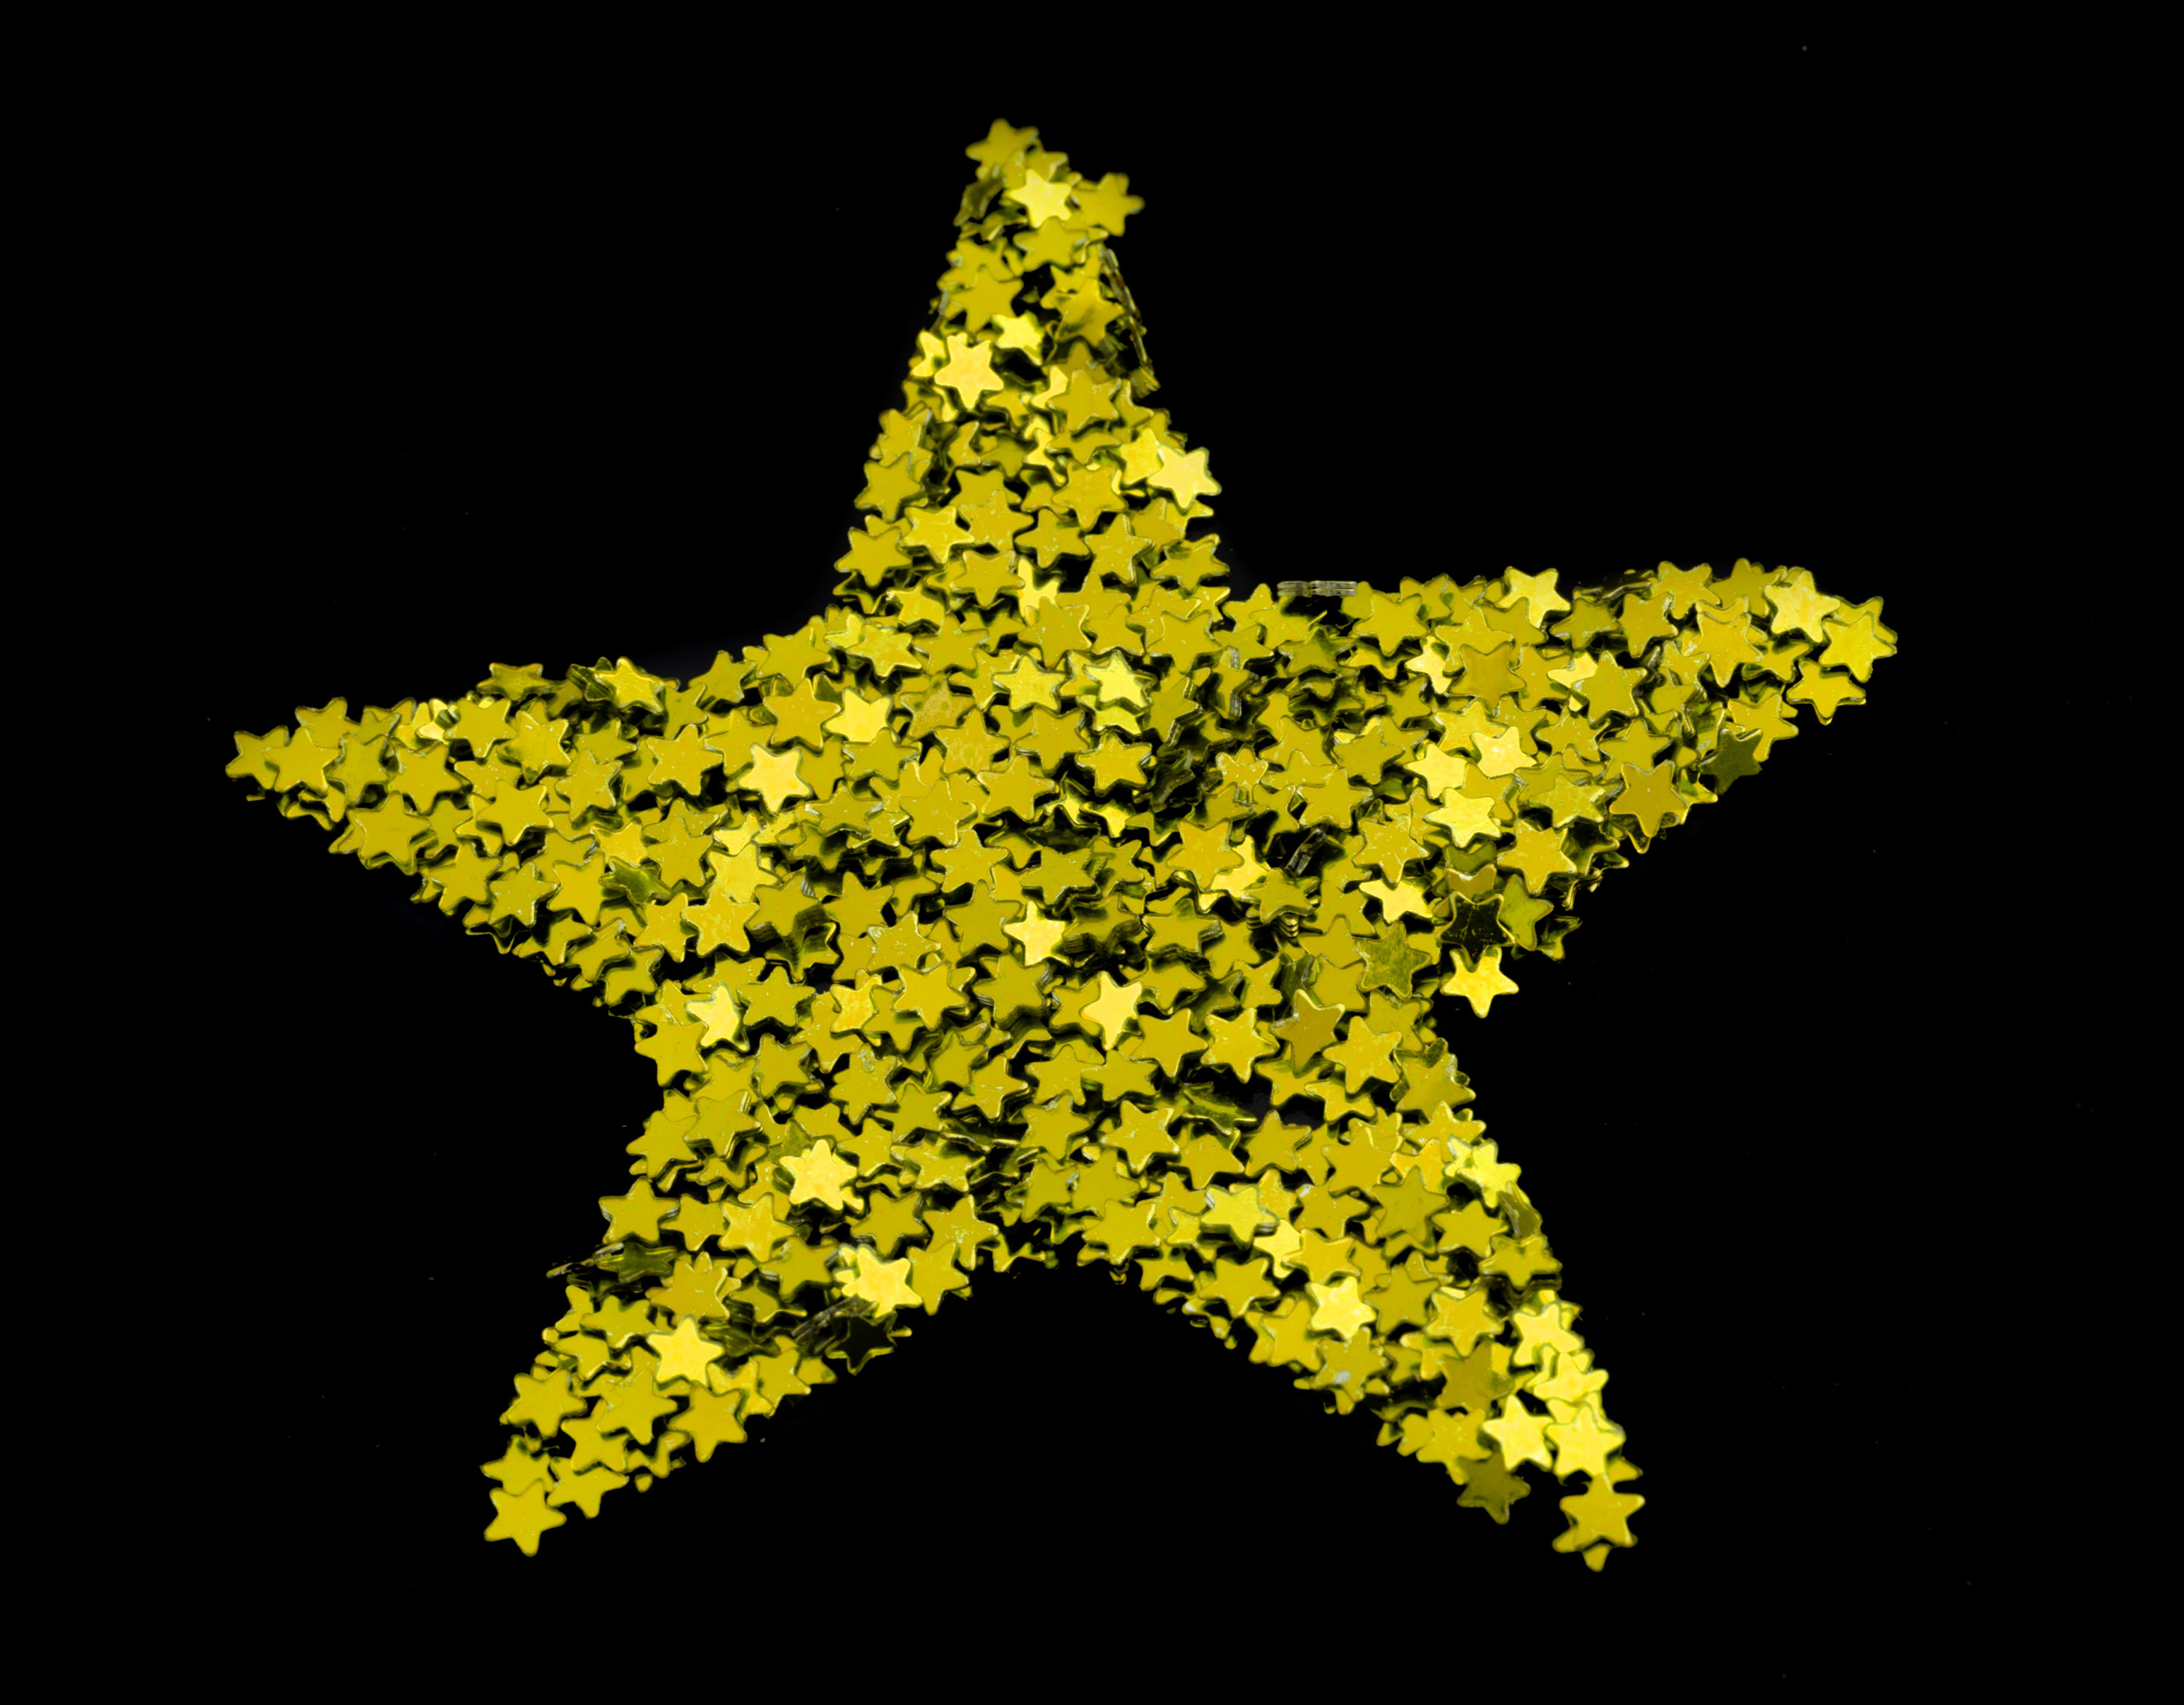 Multiple small shiny gold stars arranged to form a single large golden Christmas star on a black background